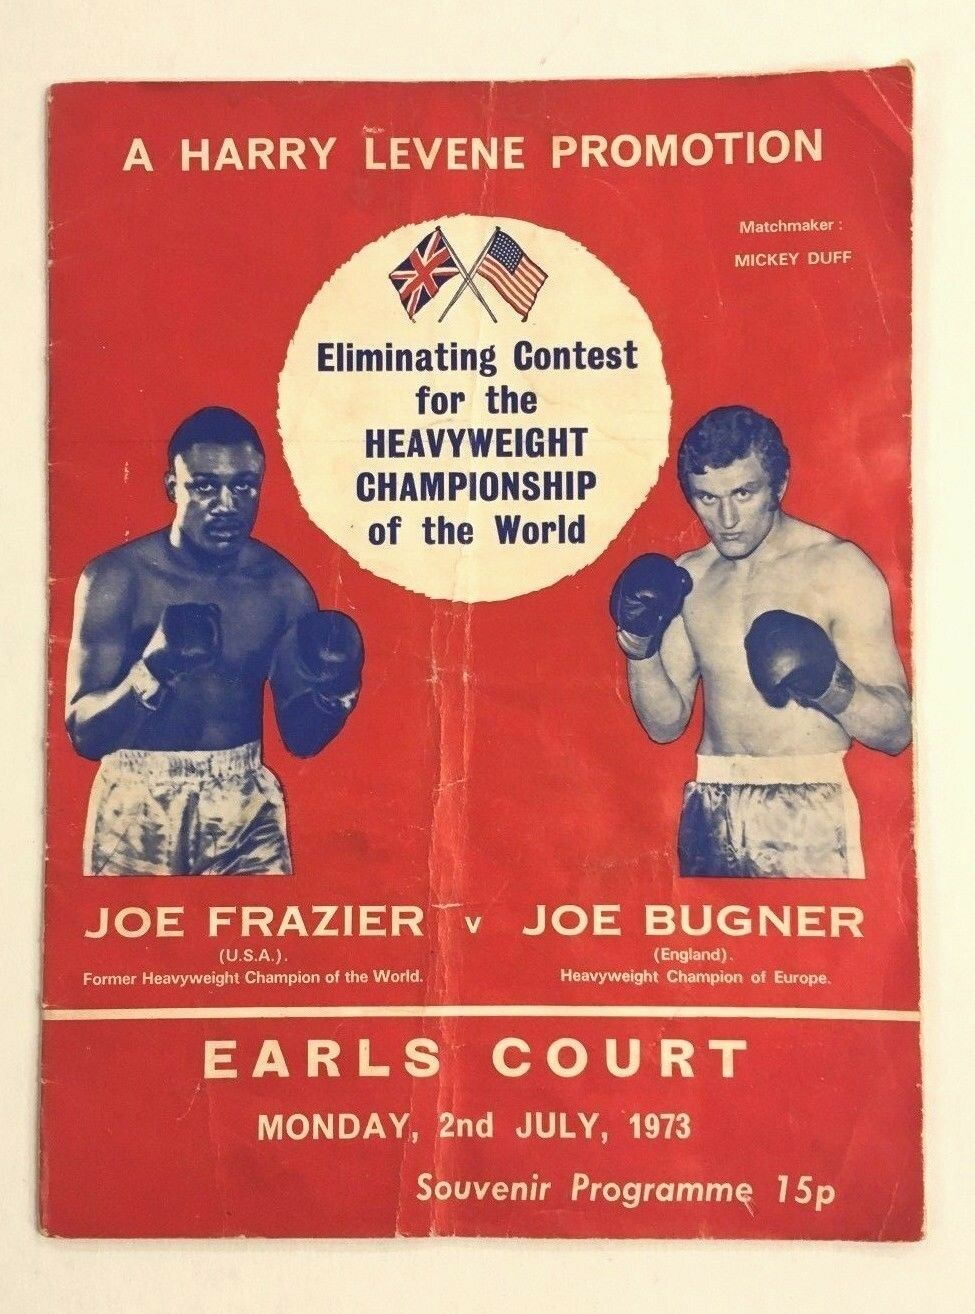 1974 Joe Frazier v Bugner at Earls Court London Very Rare Boxing Program